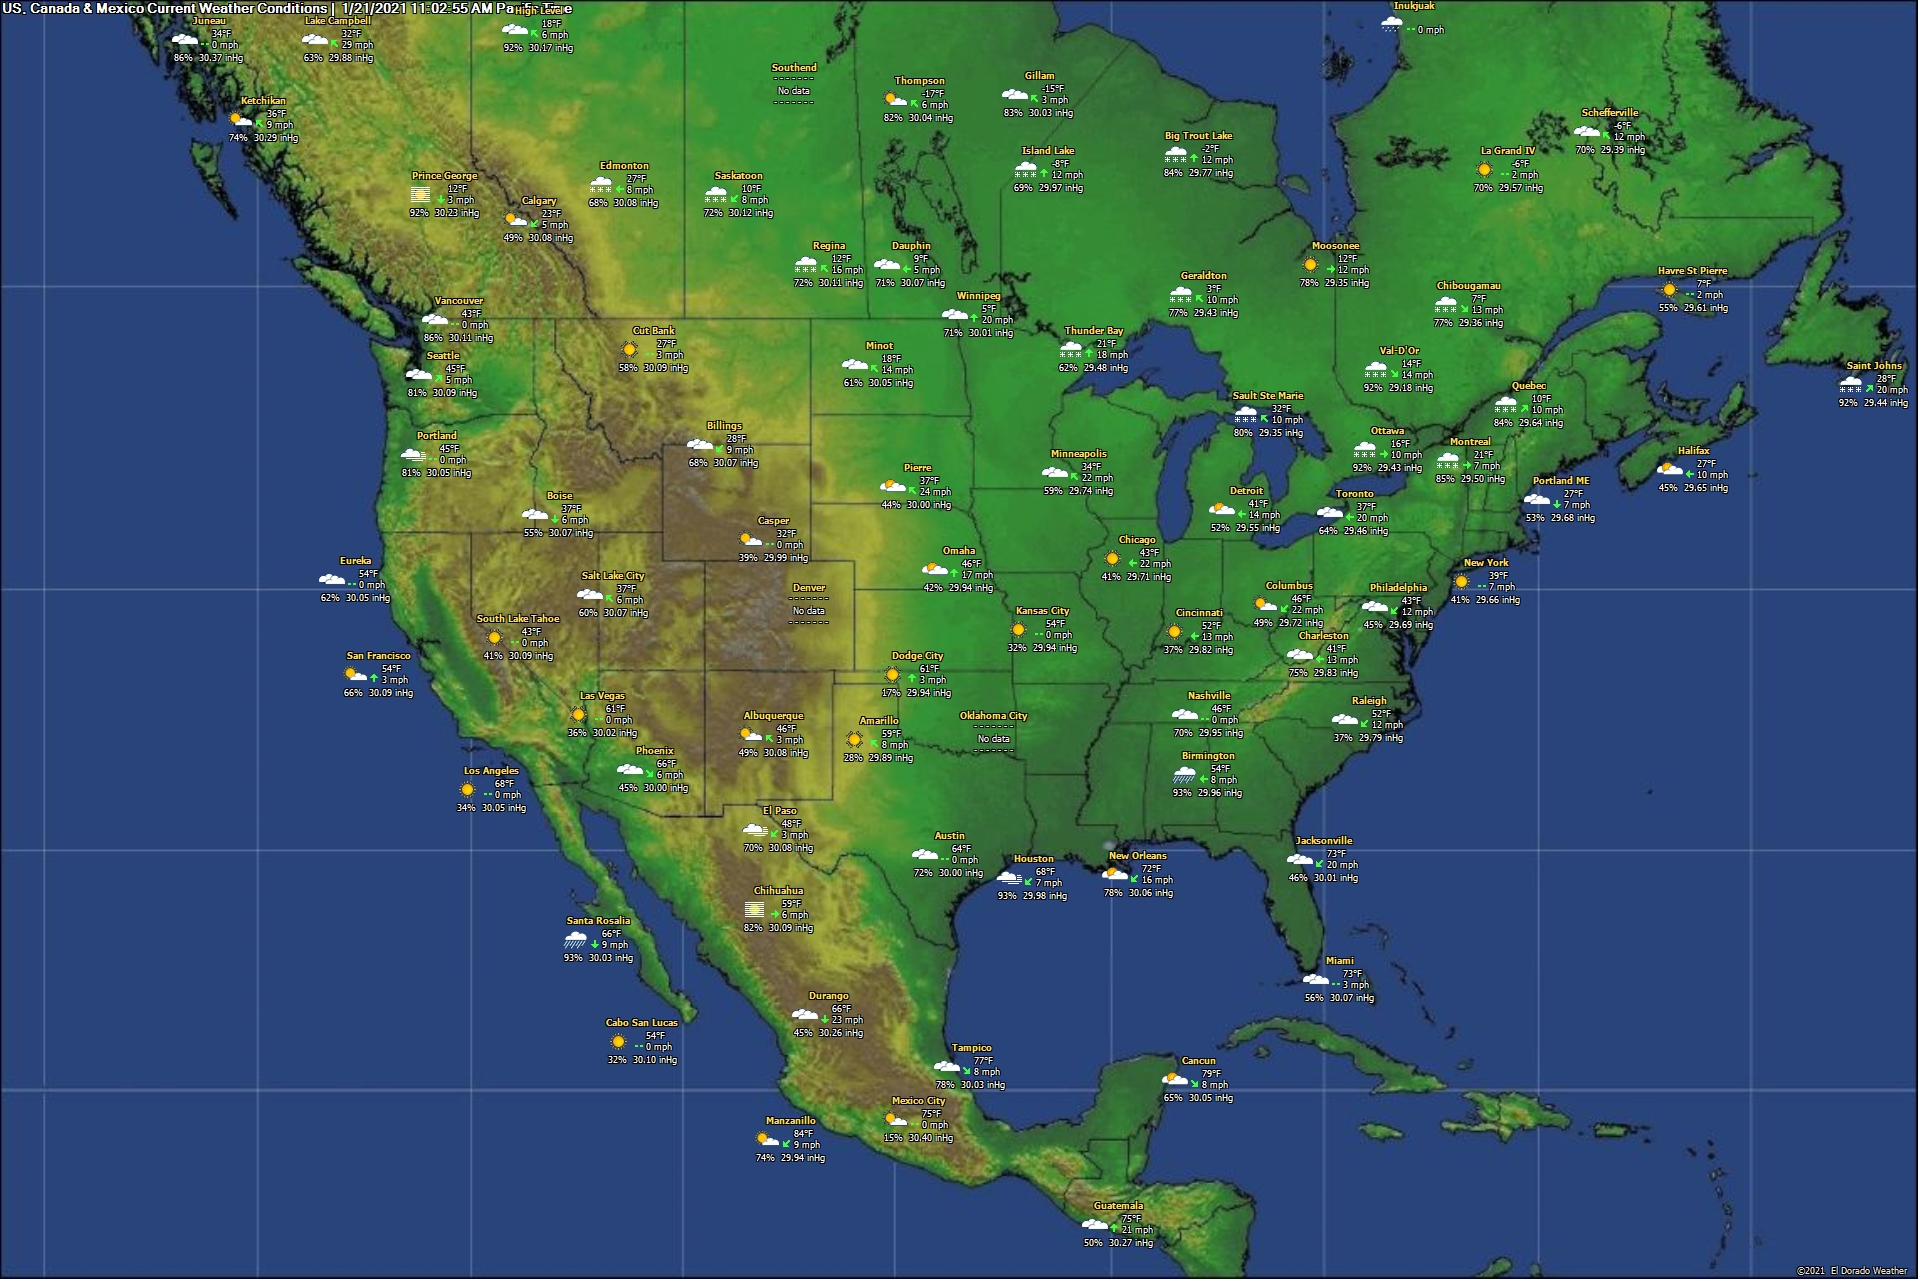 United States, Canada & Mexico Current Weather Conditions